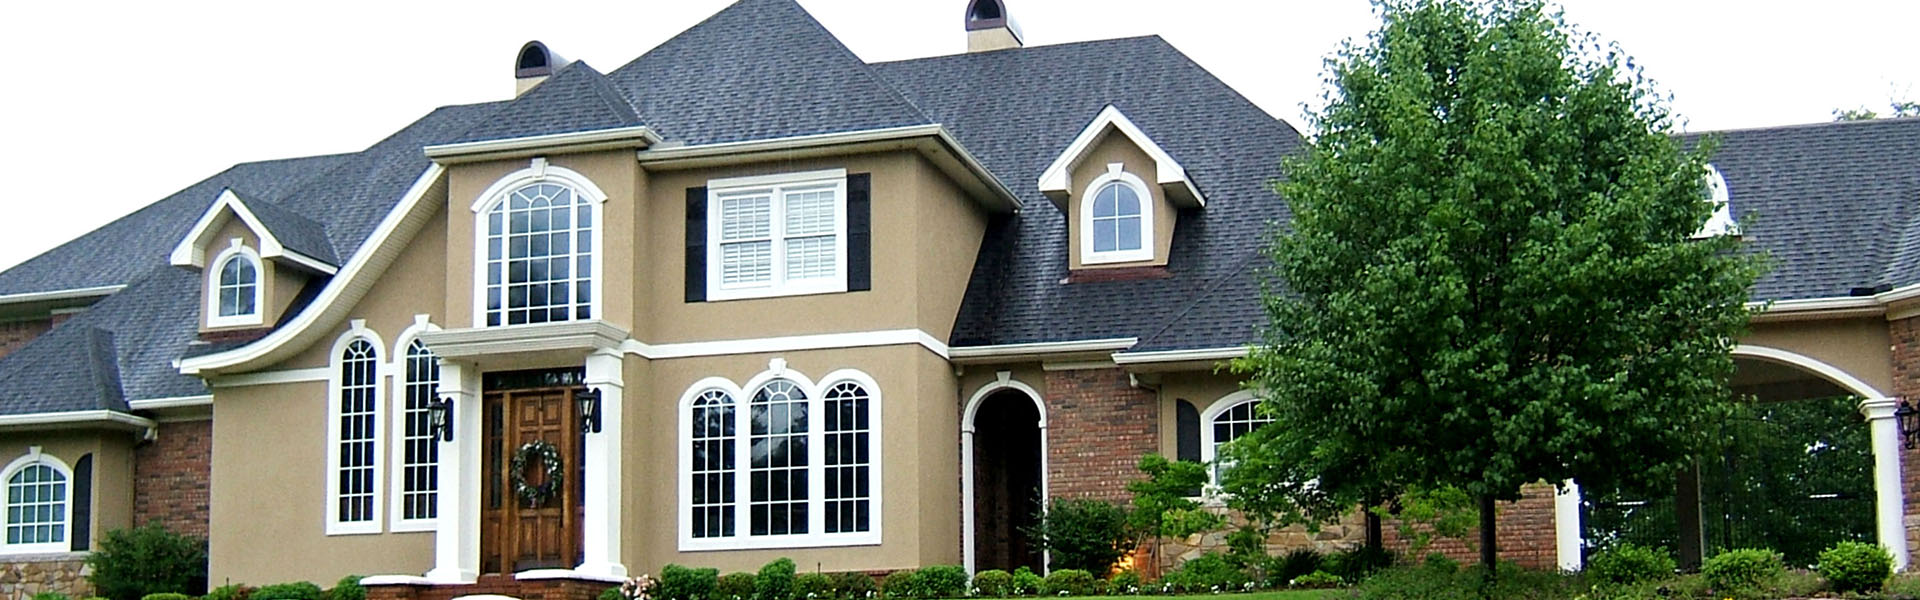 Home Remodeling Roofing Services Woodbury - Bathroom remodel woodbury mn